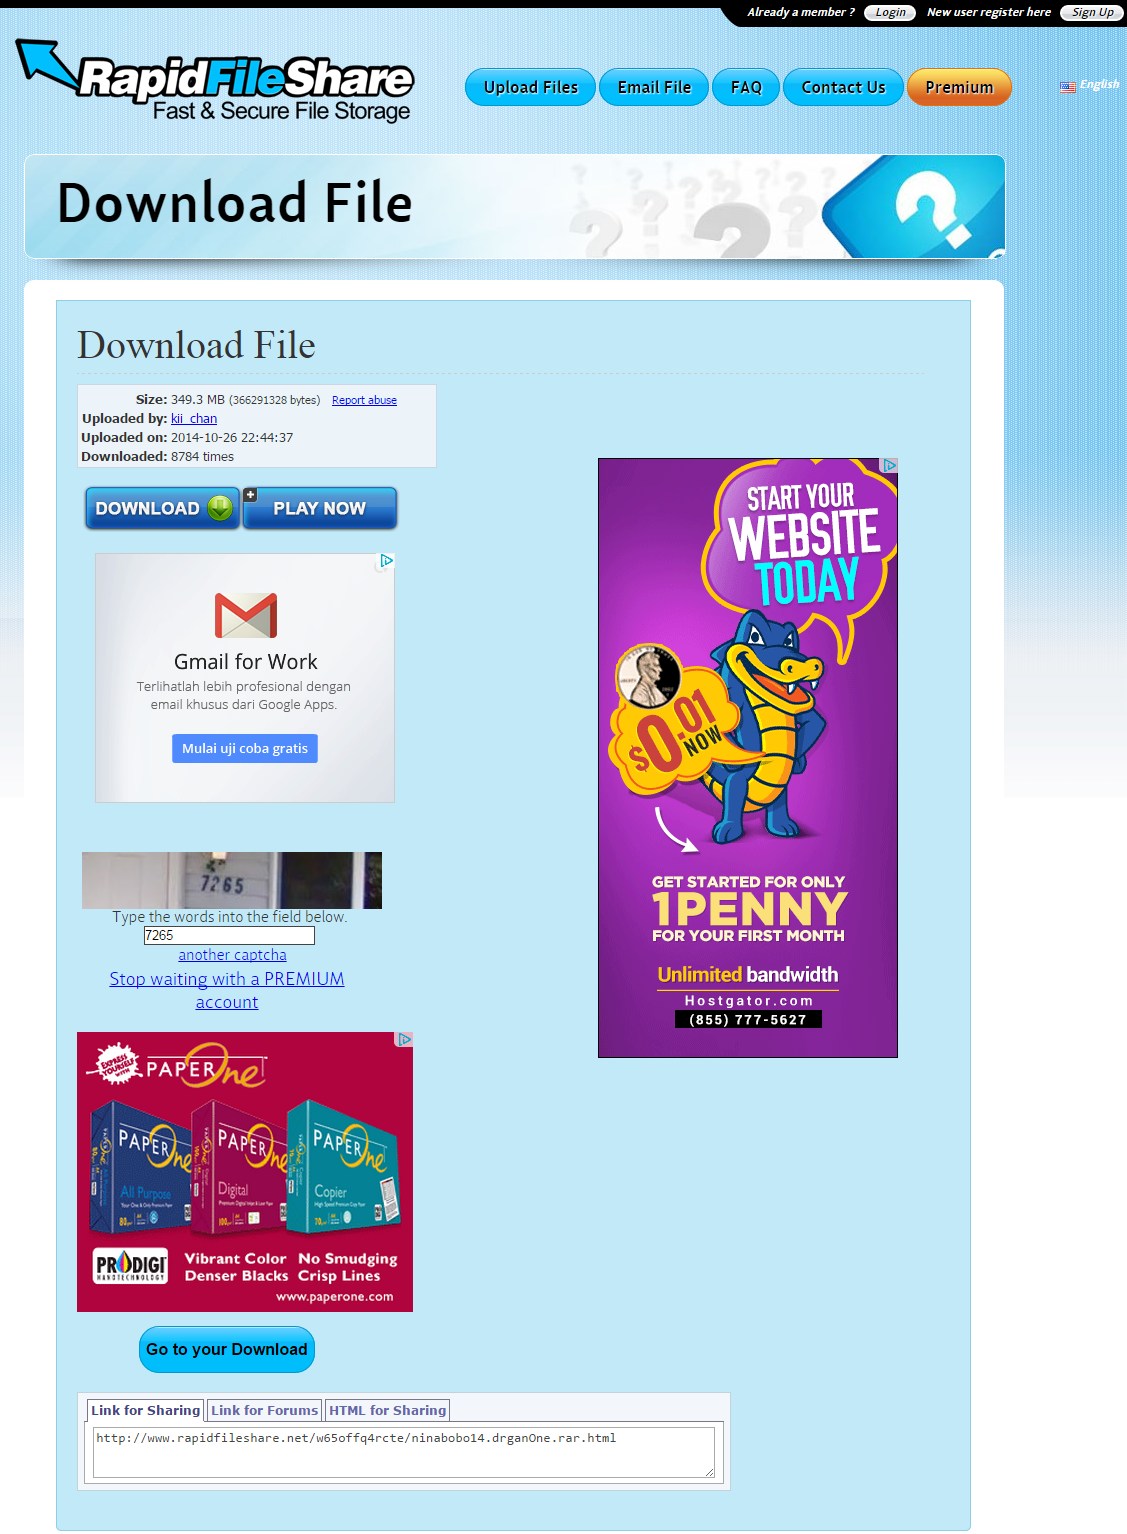 Cara download di FileRapitShare 2